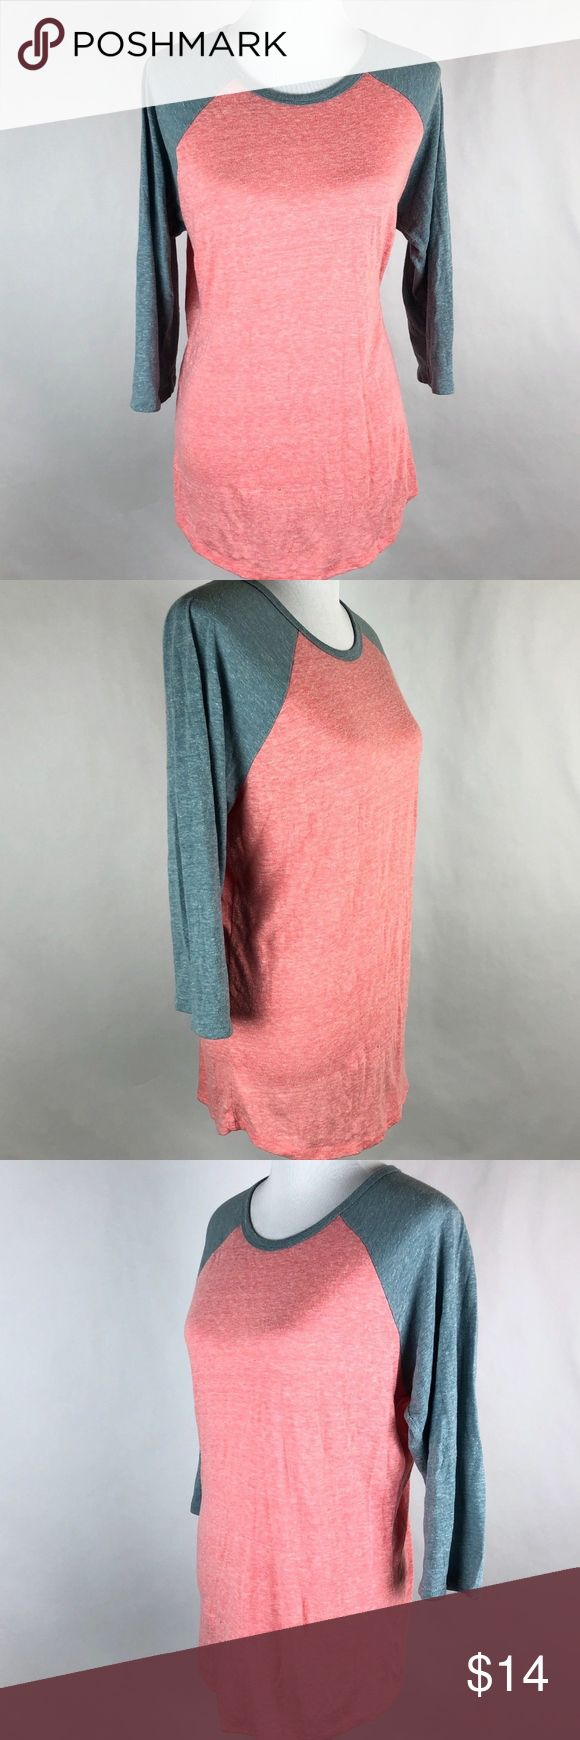 "LuLaRoe Size L Randy Shirt Pullover T Shirt Brand: lularoe  Tagged Size:Large  Total Length:30""  Sleeve Length:21""  Underarm to Underarm:21.5""  Condition: Pre Owned, in Good Shape. No Holes, Stains  U  Item comes from a pet free/smoke free clean environment  please contact me for any additional questions  I offer combined shipping LuLaRoe Tops Blouses"